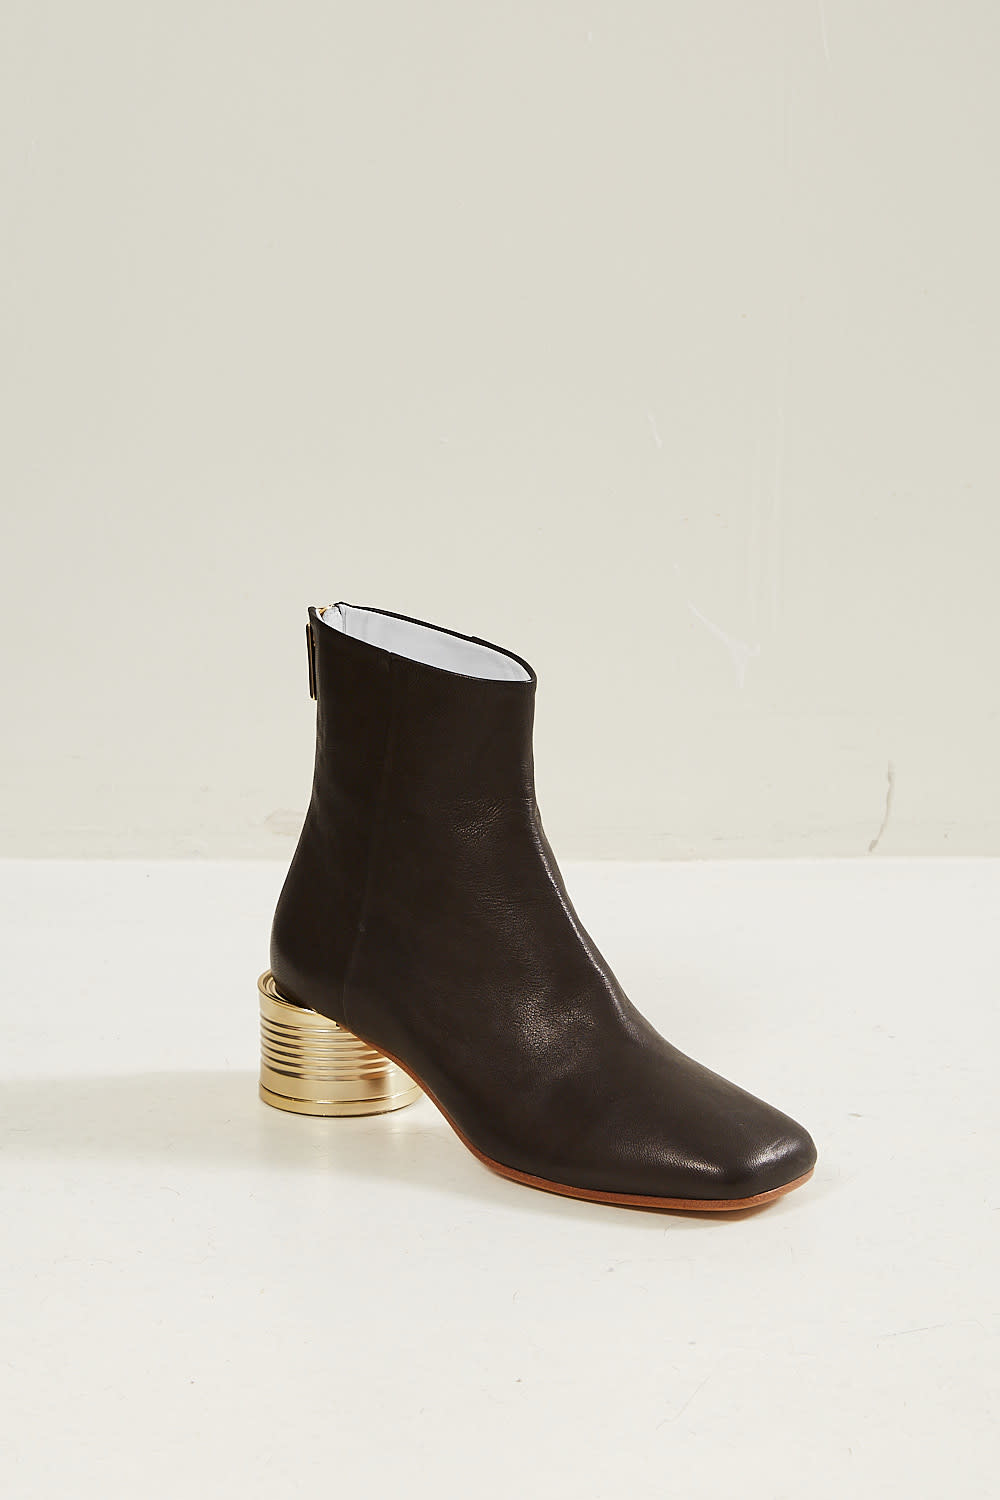 MM6 Tin can heel ankle boots